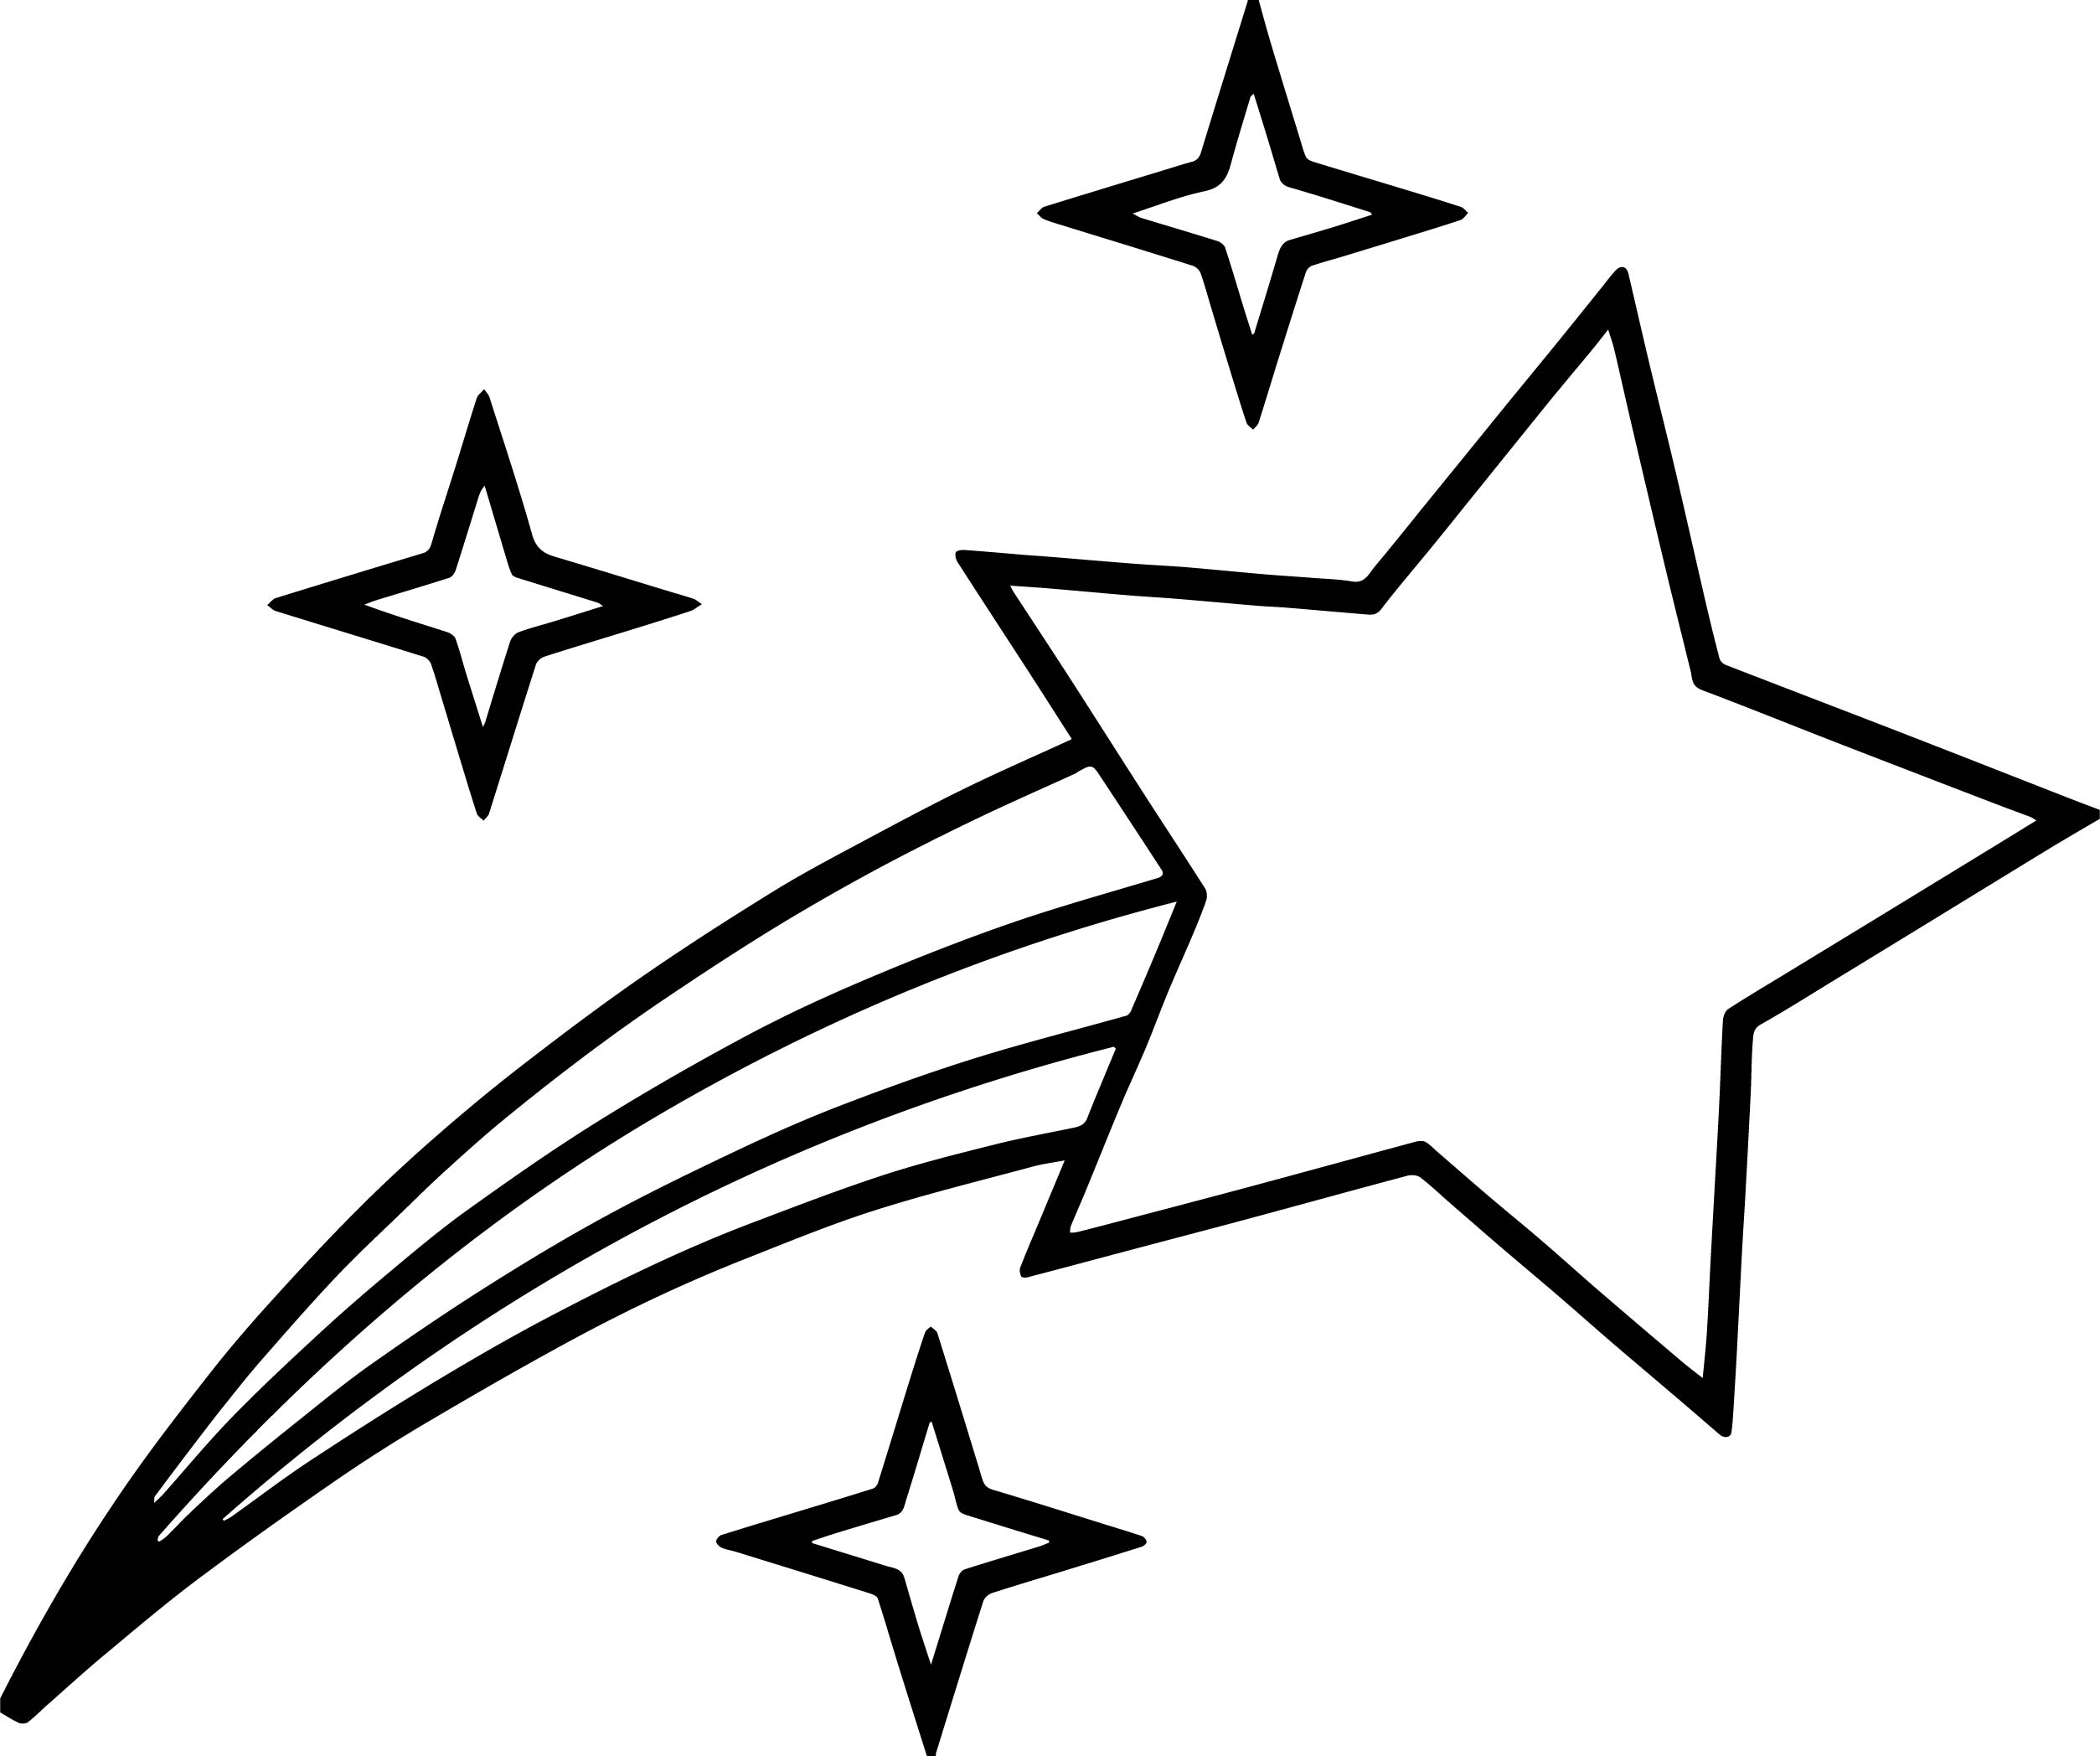 star picture to color free printable star coloring pages for kids to star picture color